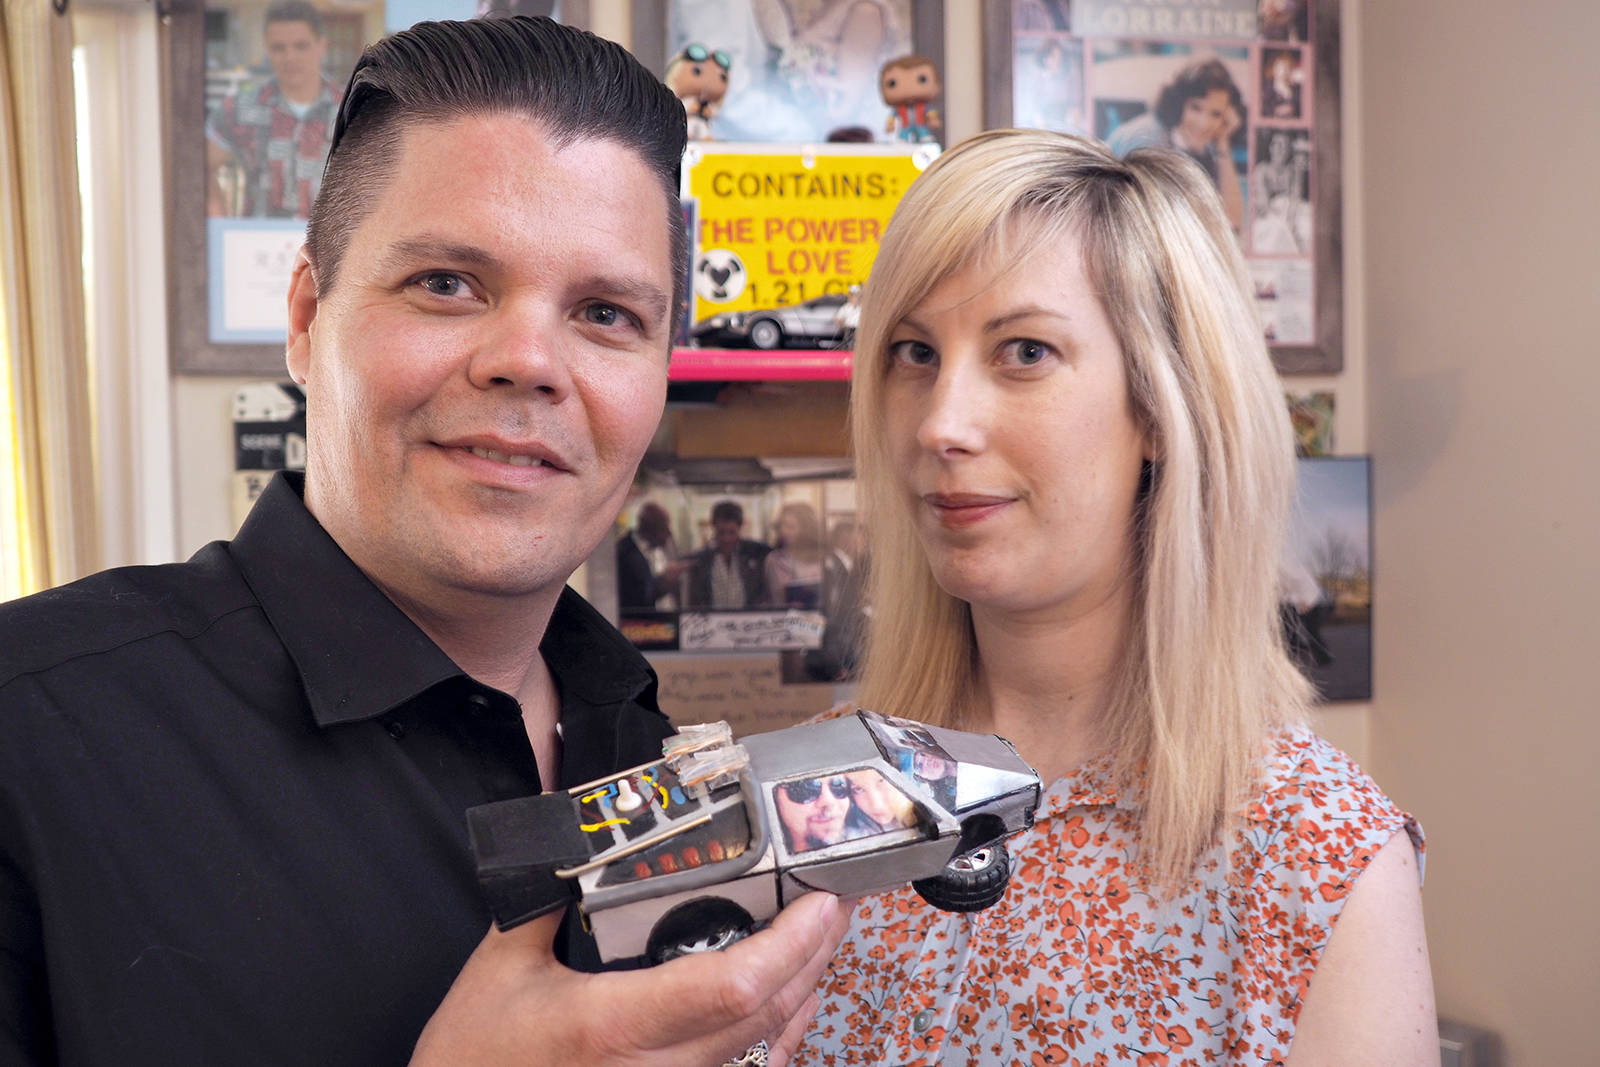 Todd and Nicole Cameron, of Nanaimo, are big movie fans who met over their love of creating costumes of characters in favourite movies, especially from Back to the Future. When it came time to pop the question, Todd crafted a DeLorean engagement ring box and proposed to Nicole at Universal Studios on Back to the Future Day. (CHRIS BUSH/ The News Bulletin)